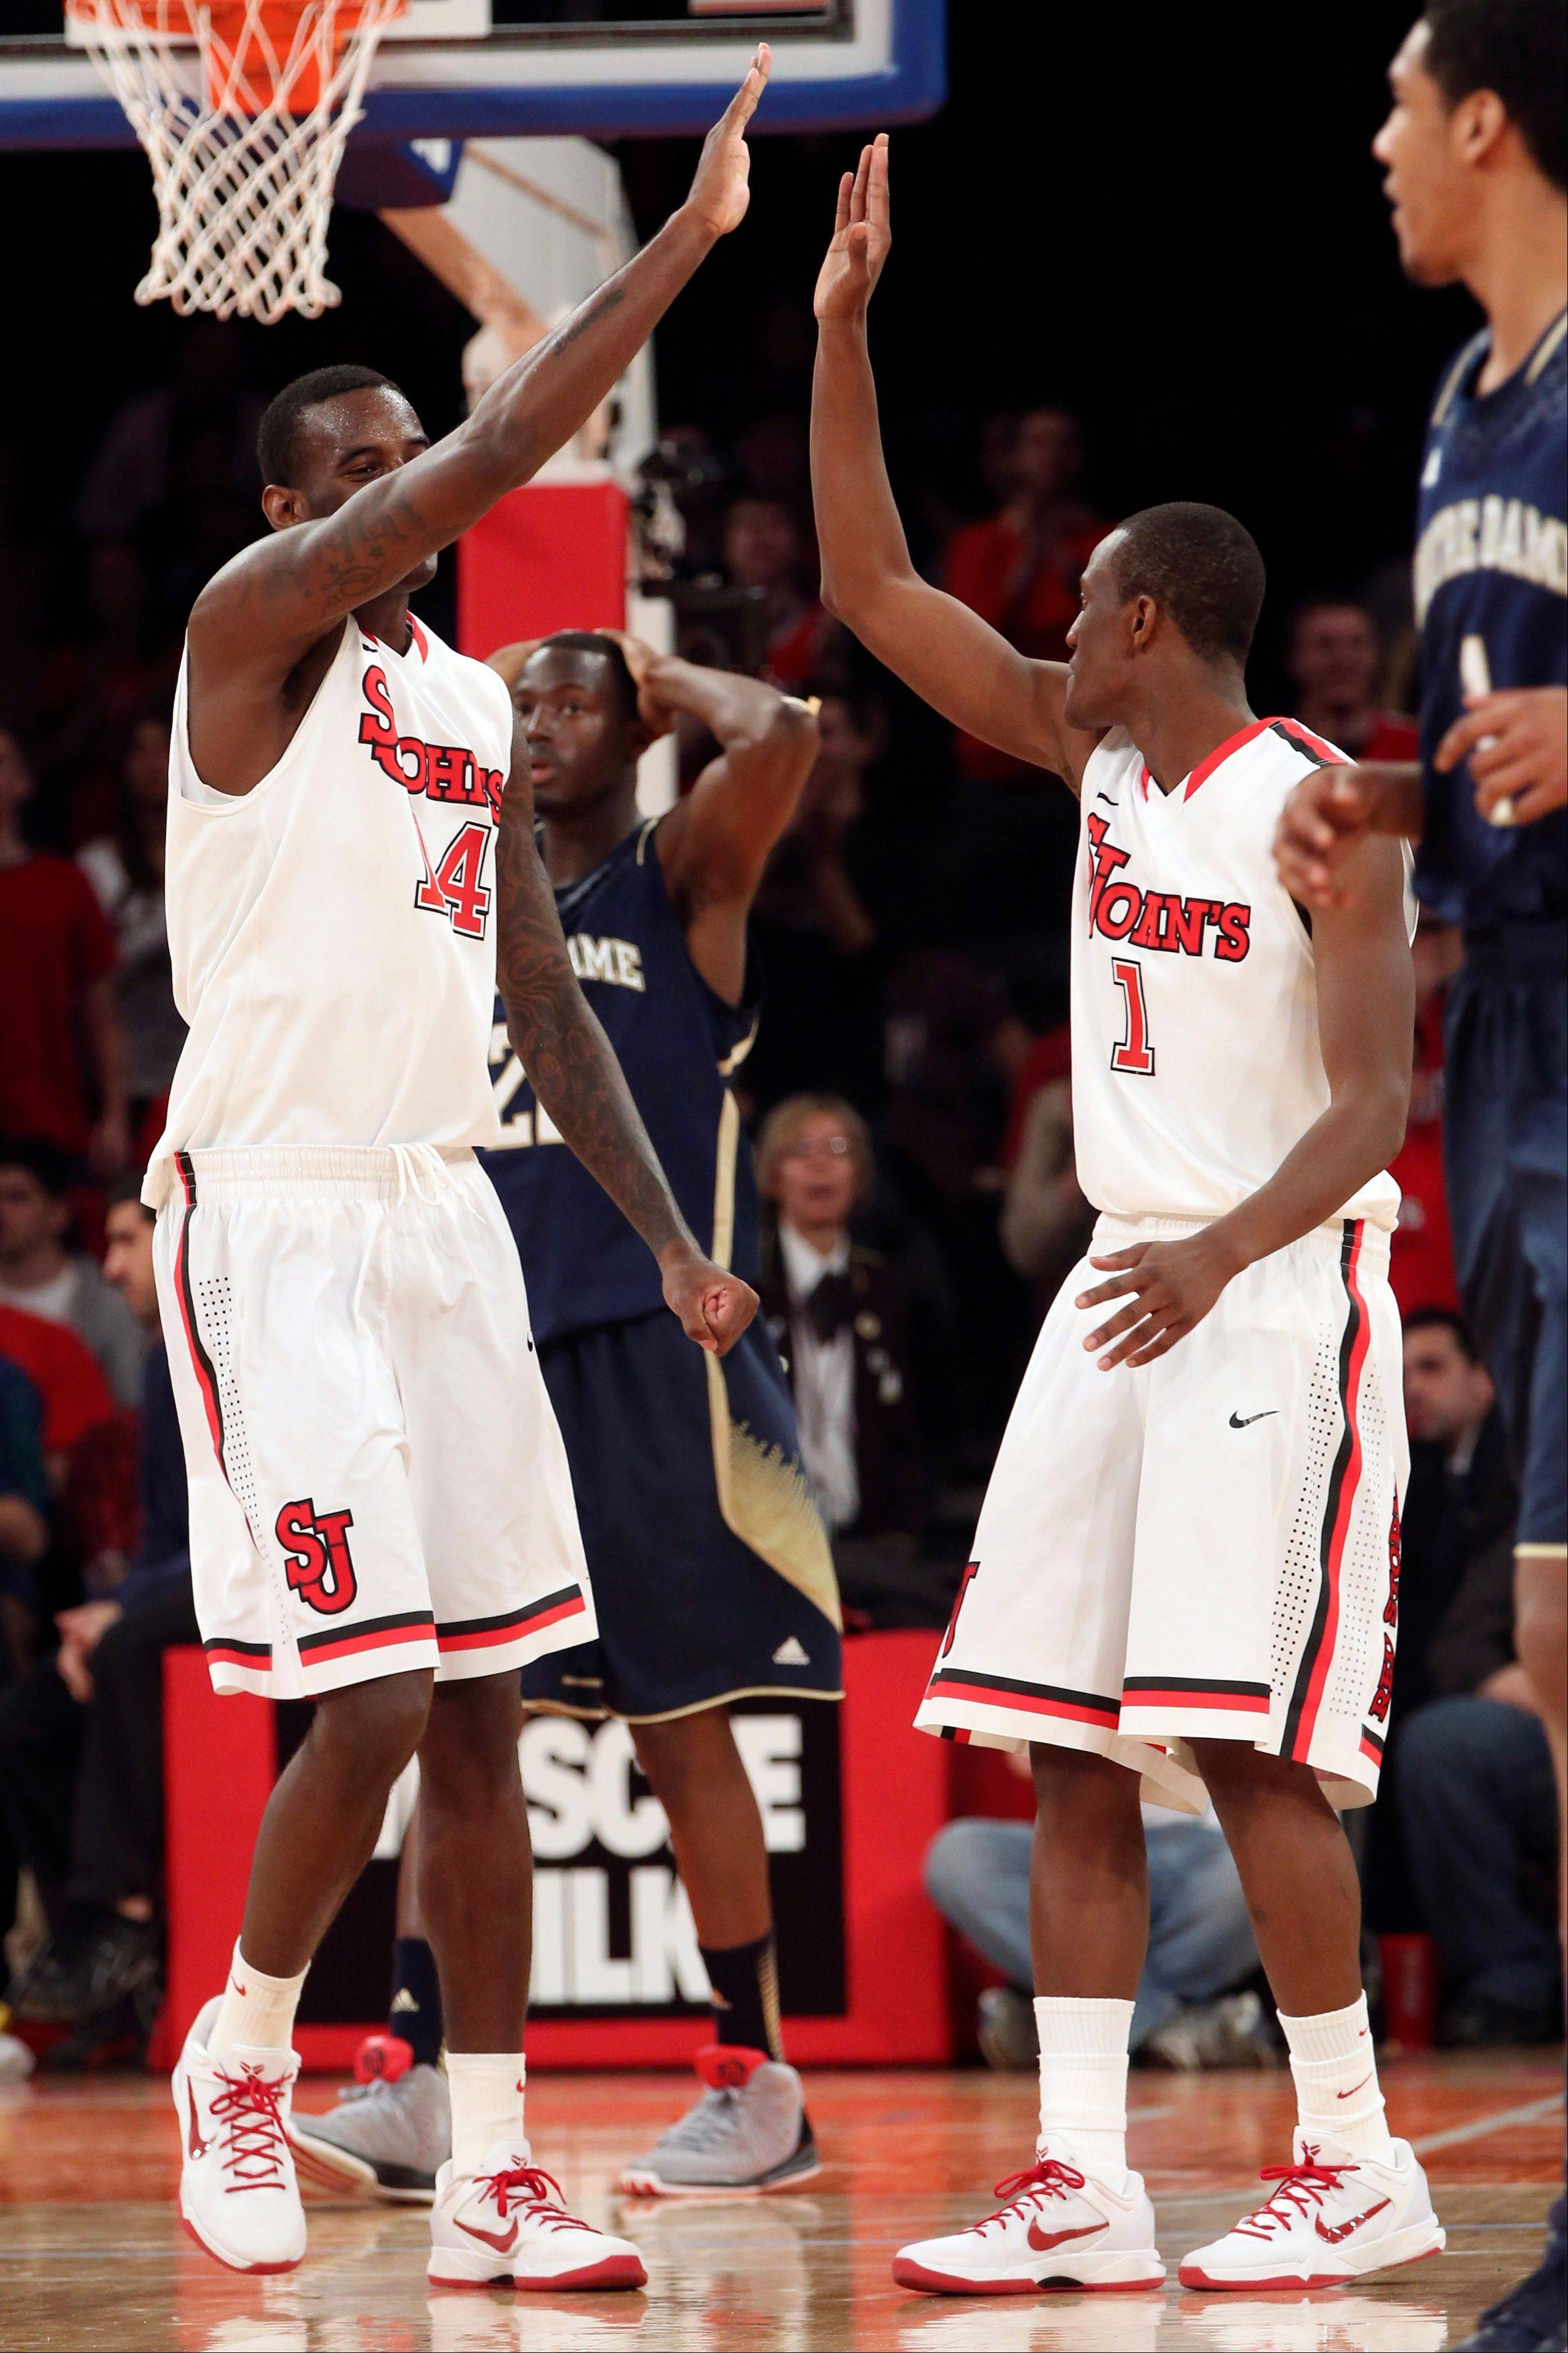 St. John's Jakarr Sampson, left, and Phil Greene IV celebrate a call during the second half of the NCAA college basketball game against Notre Dame, Tuesday, Jan. 15, 2013, at Madison Square Garden in New York. St. John's won 67-63.